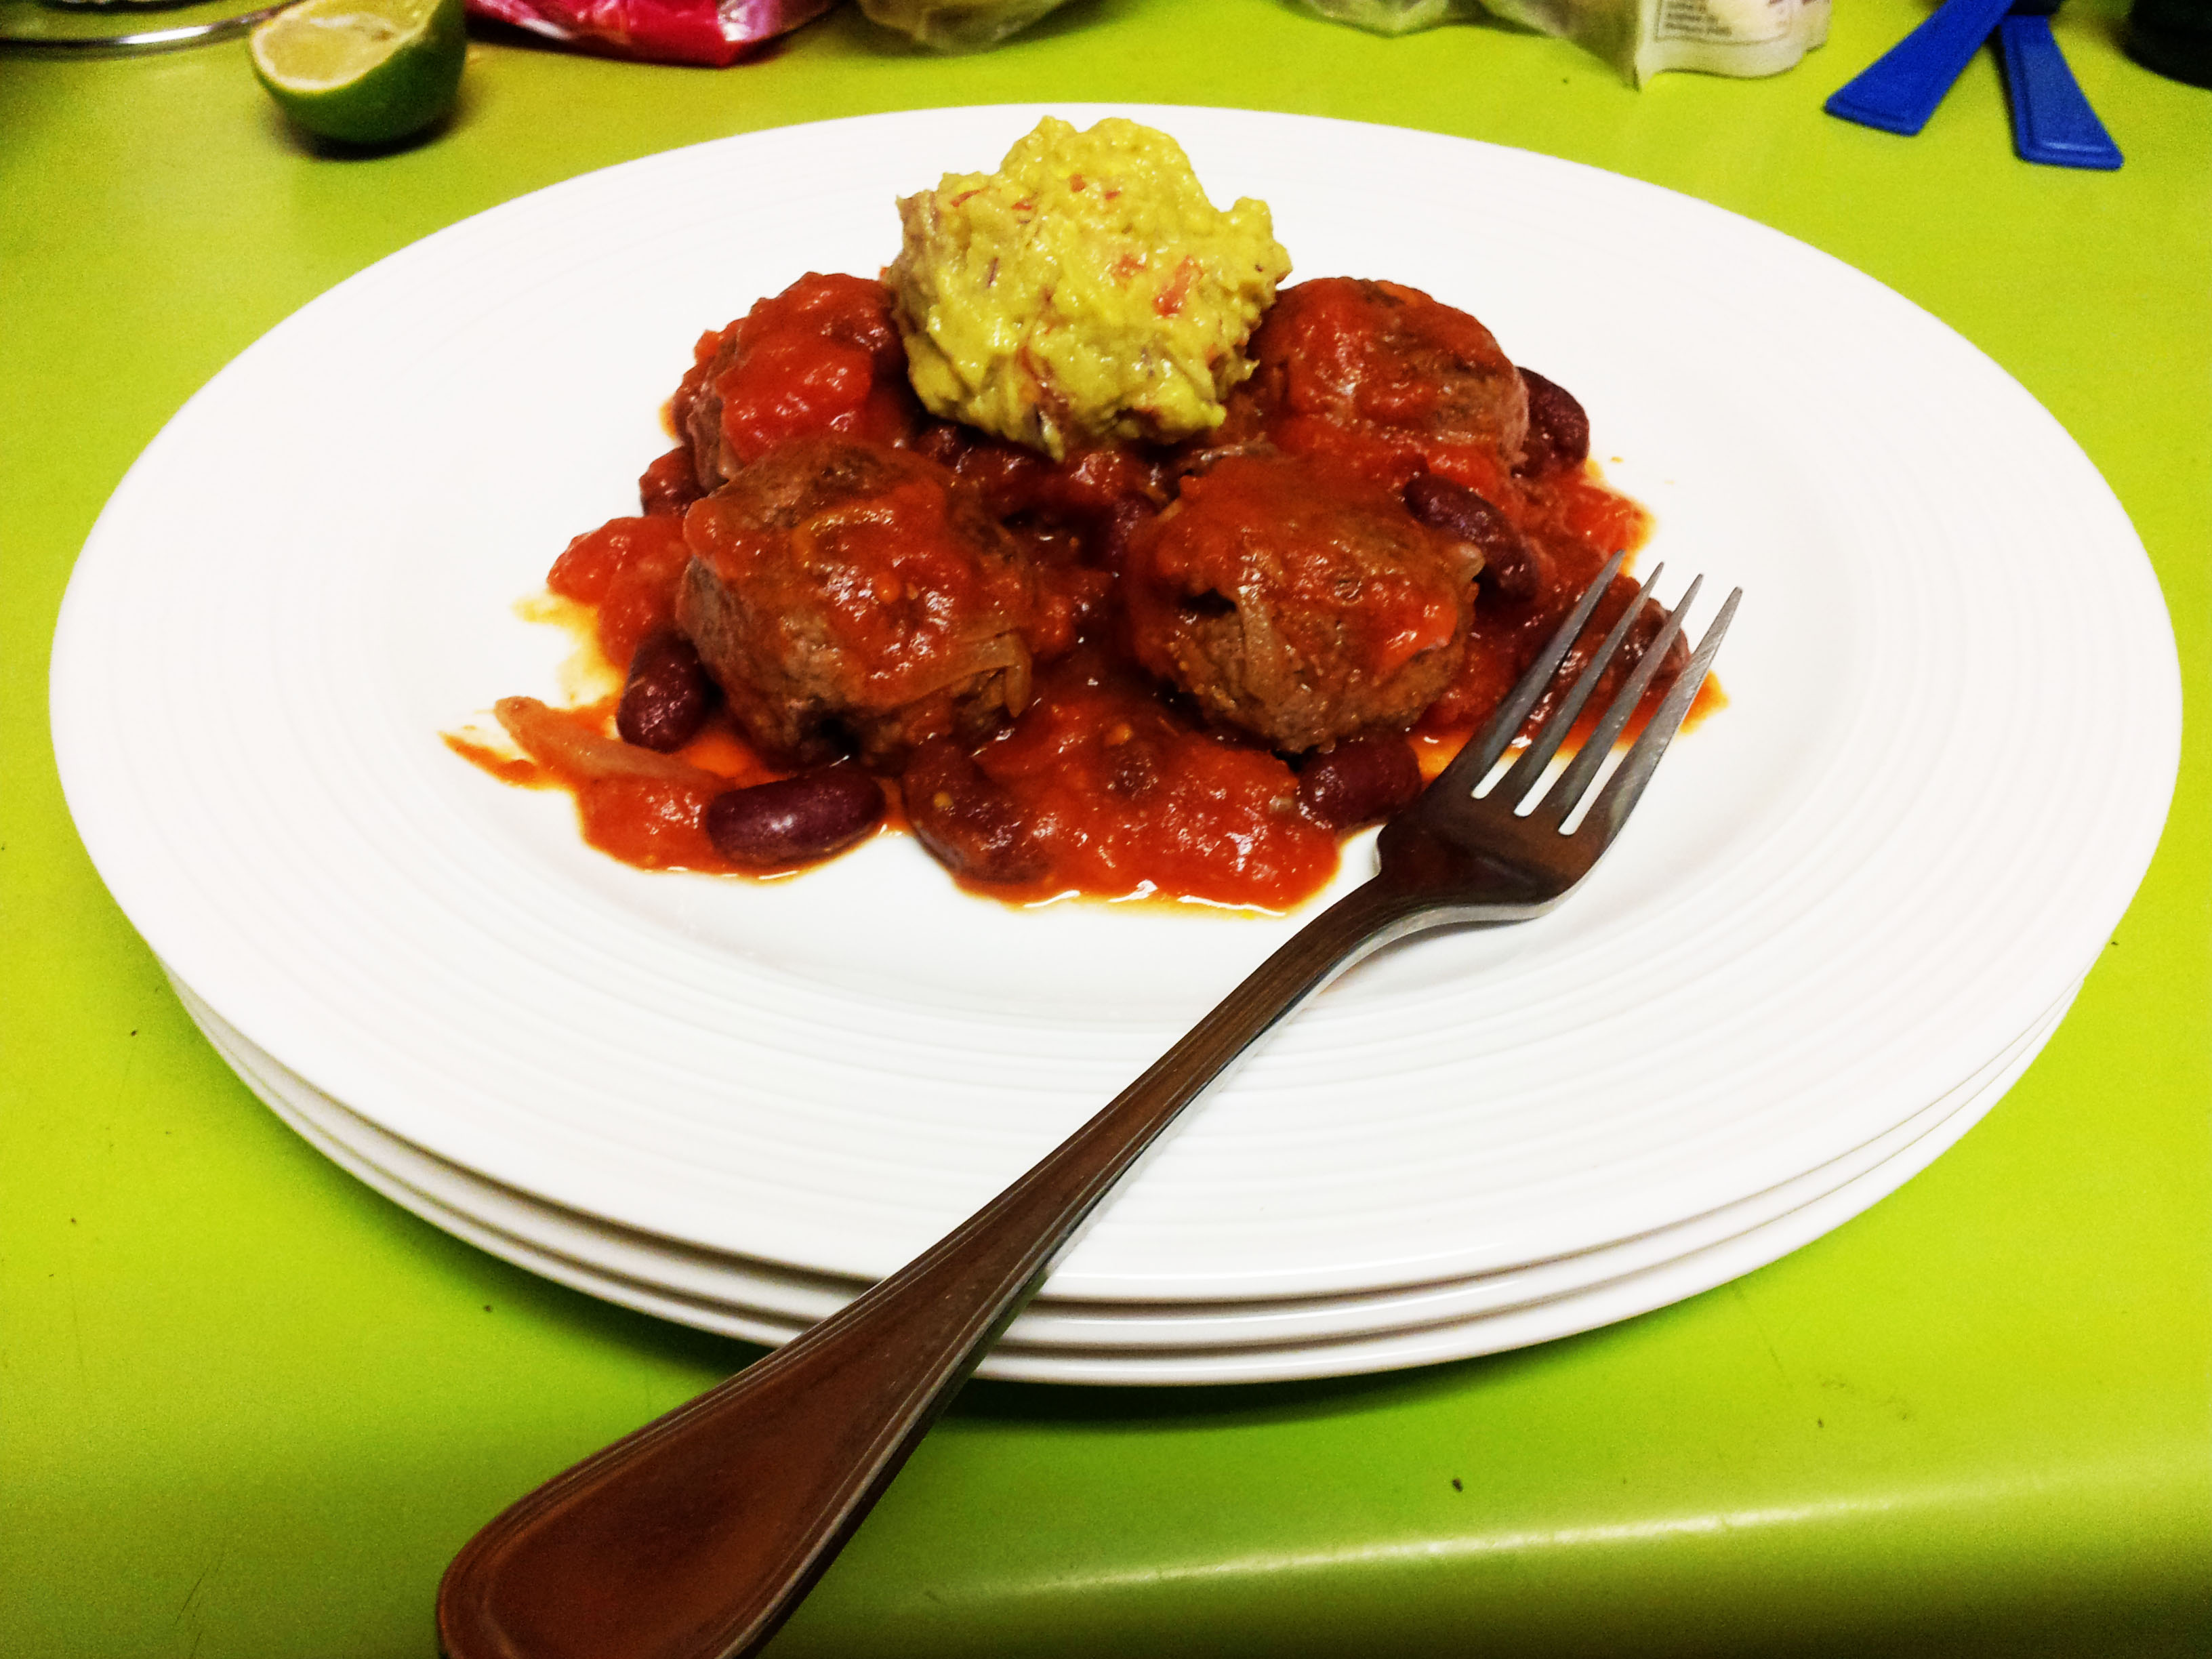 Spicy meatballs with guacamole